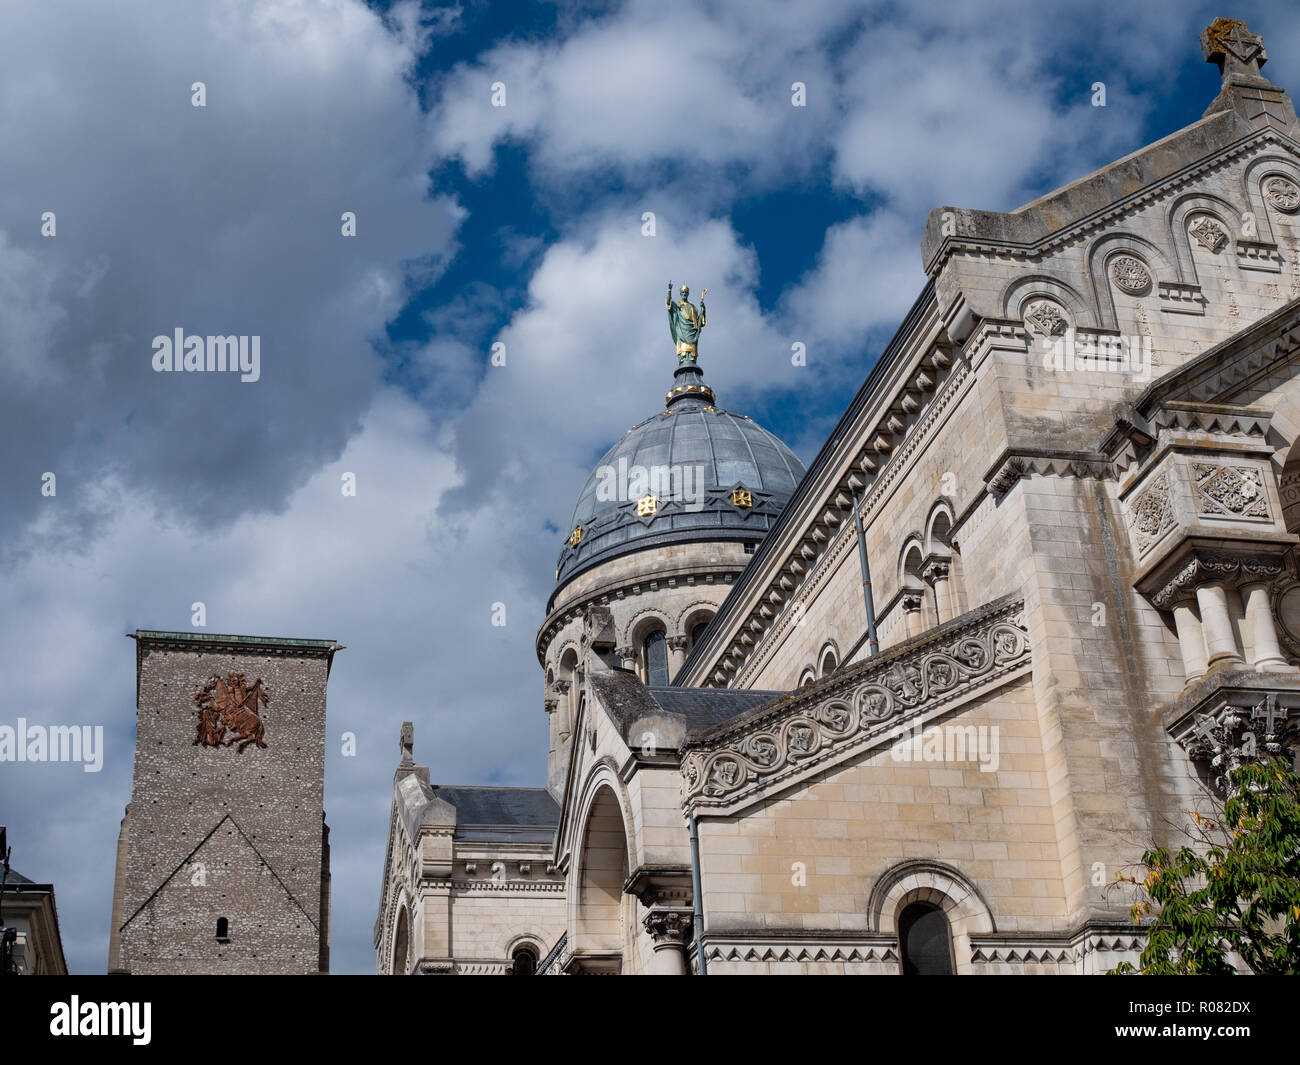 Statue above the basilica of St Martin. It's a Roman Catholic basilica dedicated to Saint Martin of Tours, in France, on whose tomb it was built. Stock Photo